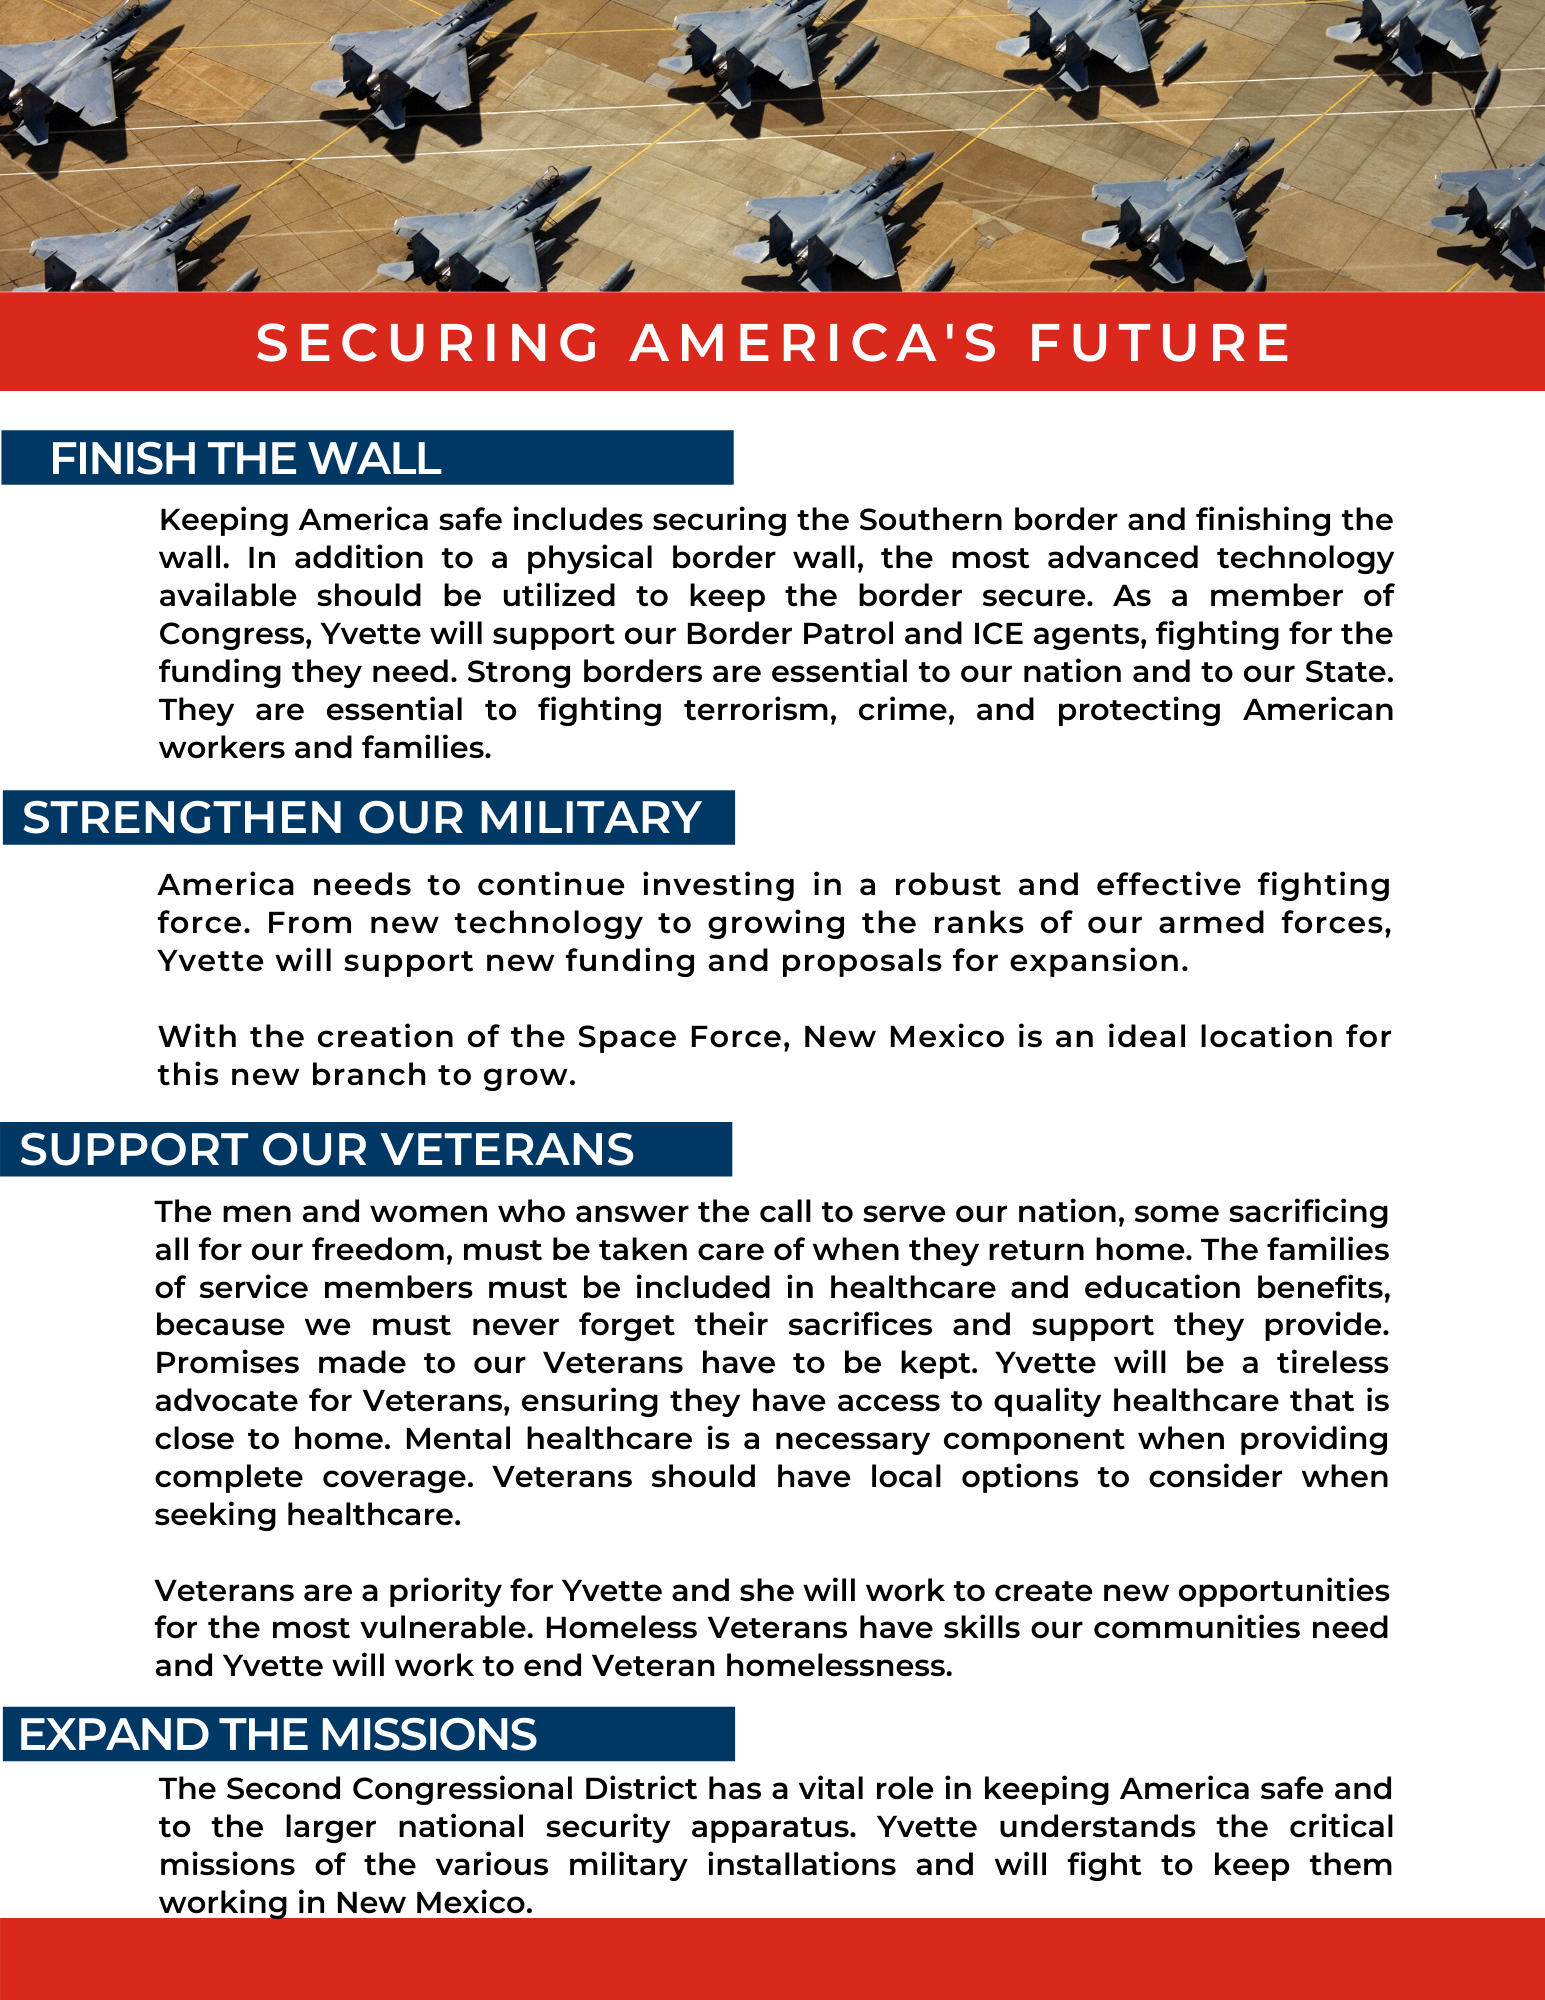 Securing America's Future